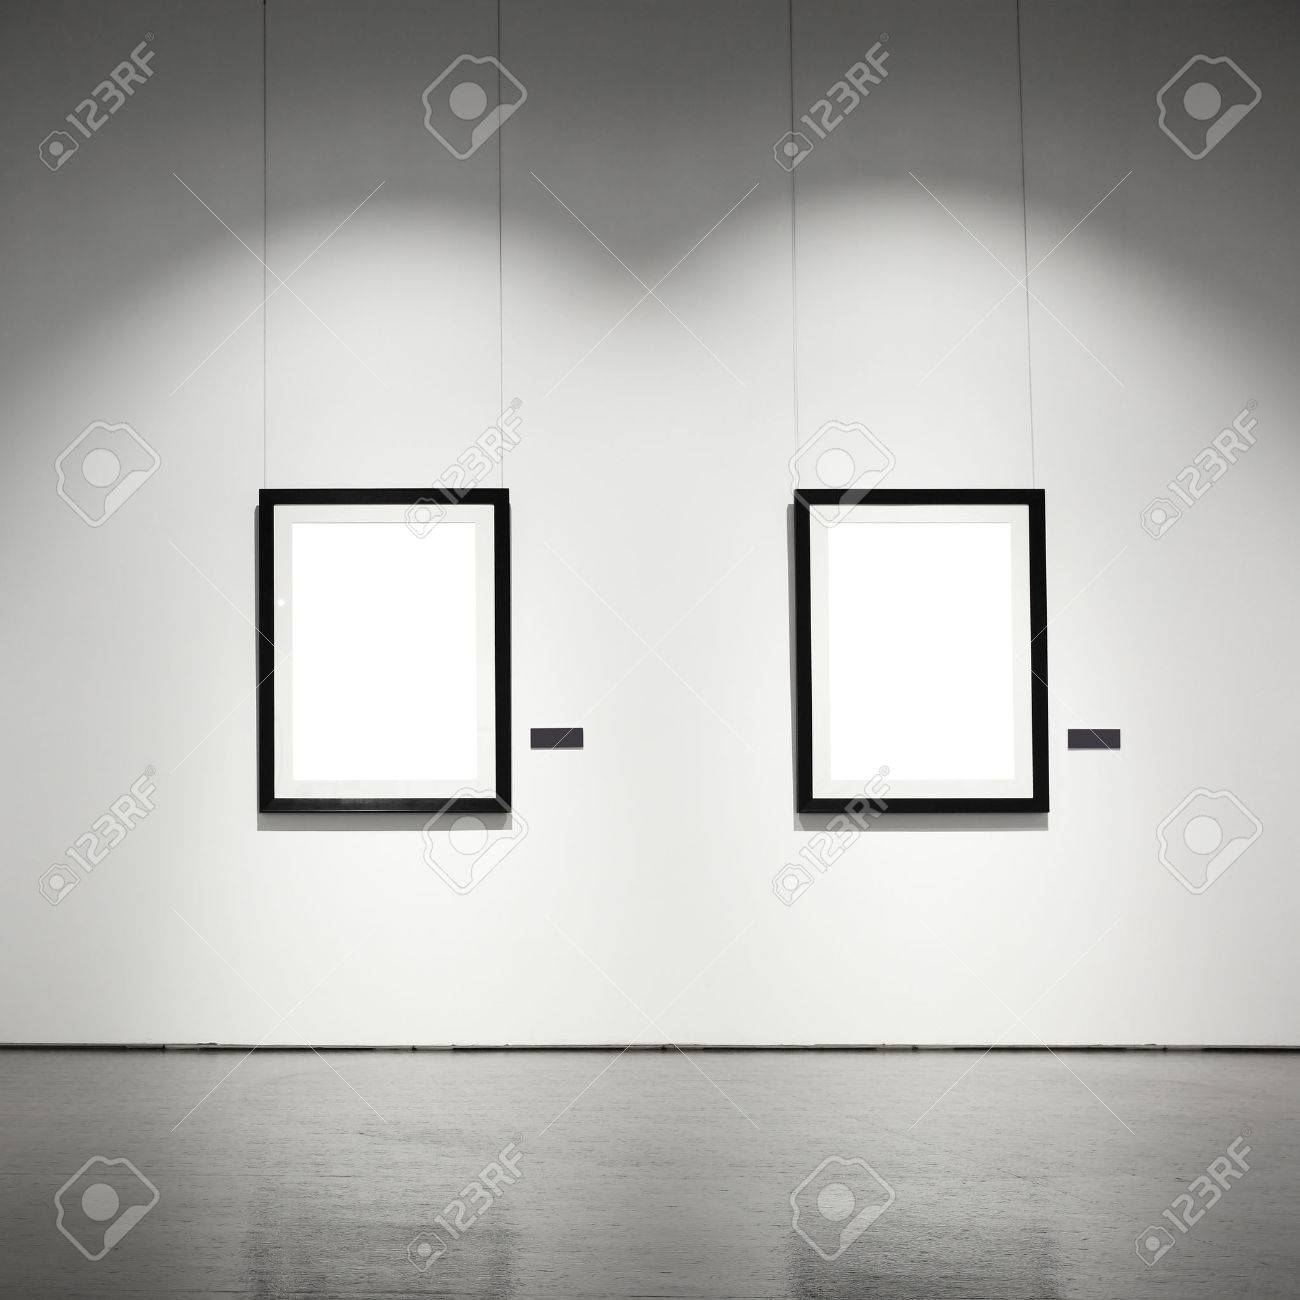 exhibition hall with empty frames on wall stock photo 37631676